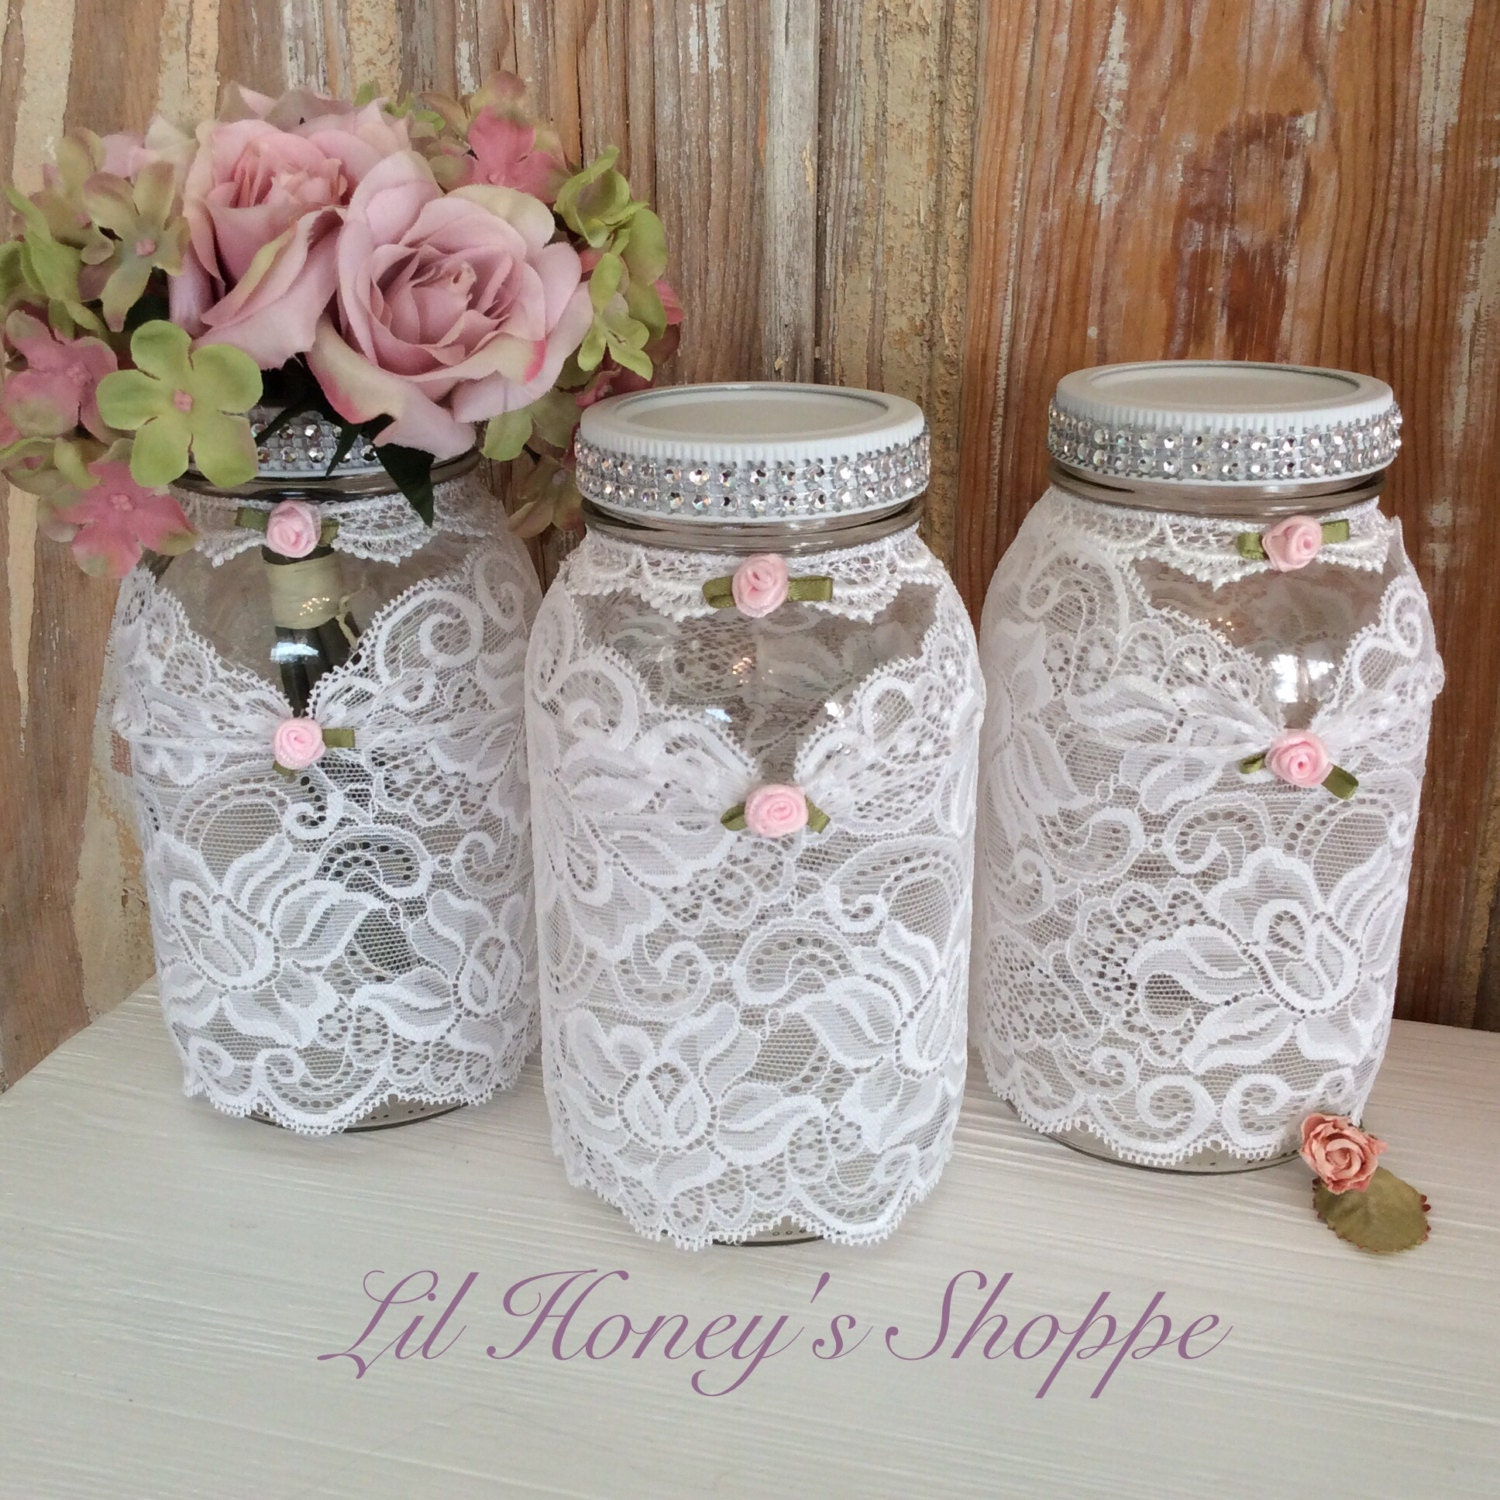 Country Wedding Mason Jars: Wedding Mason Jars Shabby Chic Country Lace Sleeve With